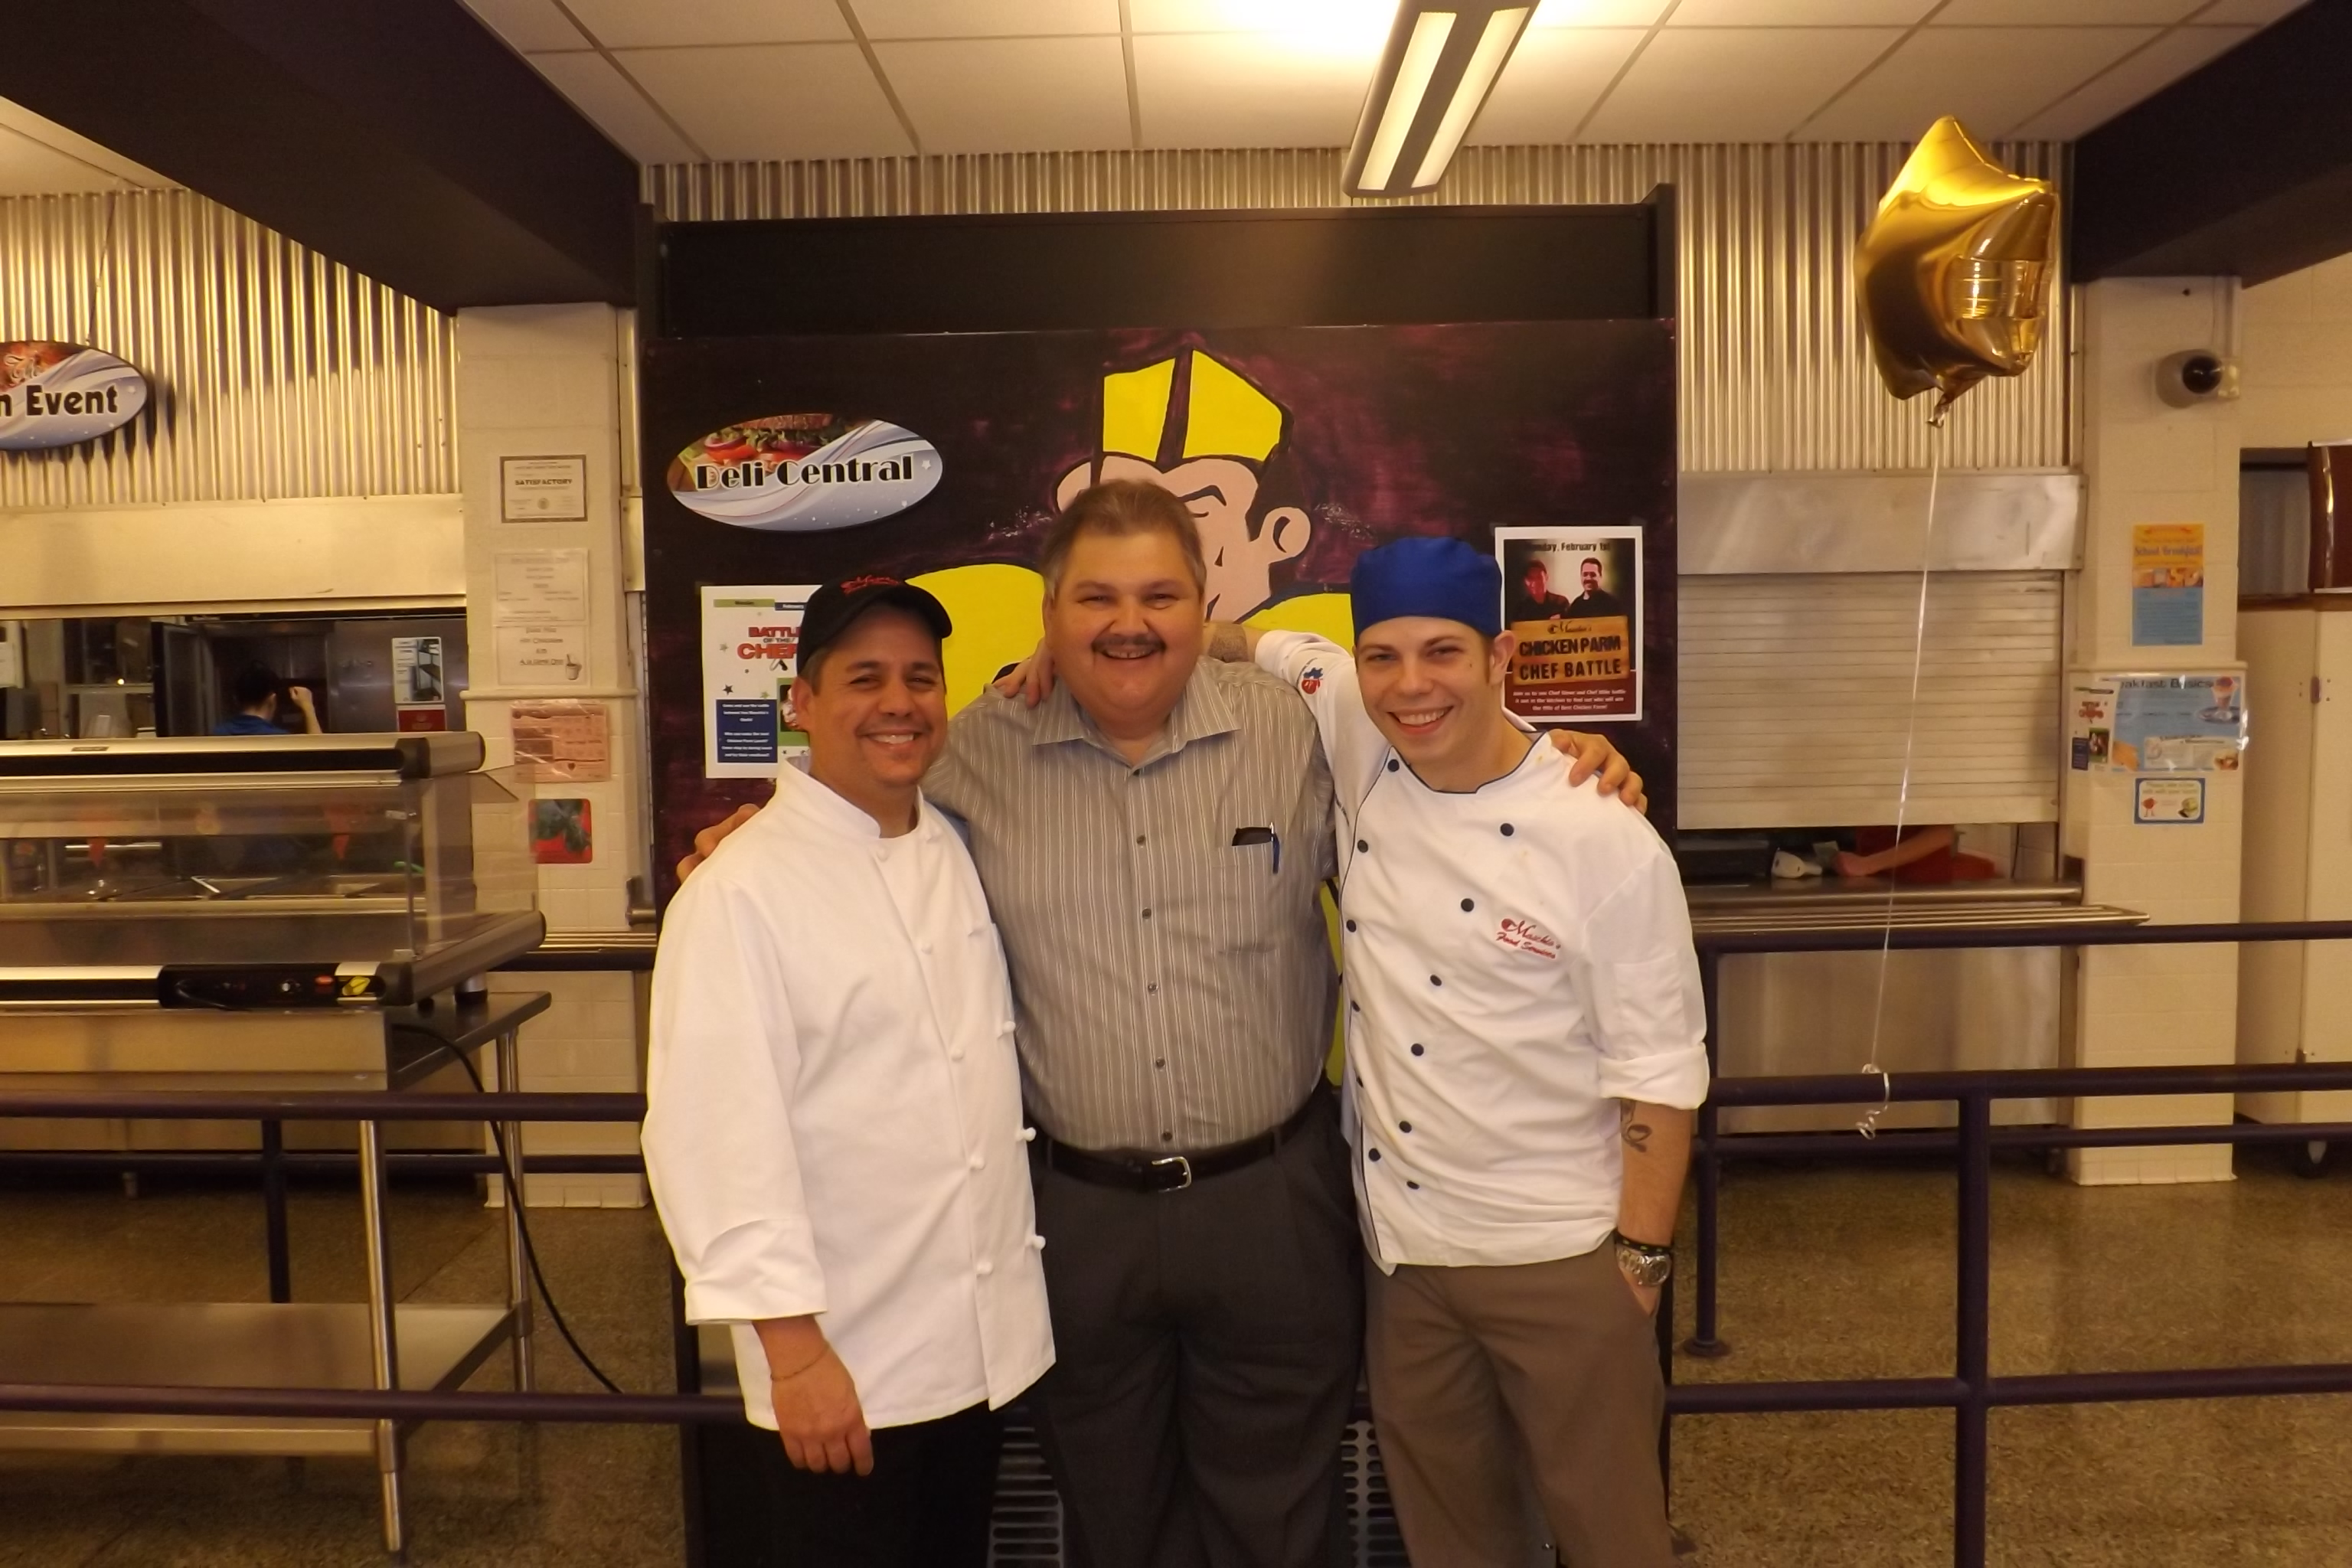 Garfield Chef Steve Escobedo and Corporate Chef Michael Herman pictured with Maschio's President, Frank Maschio